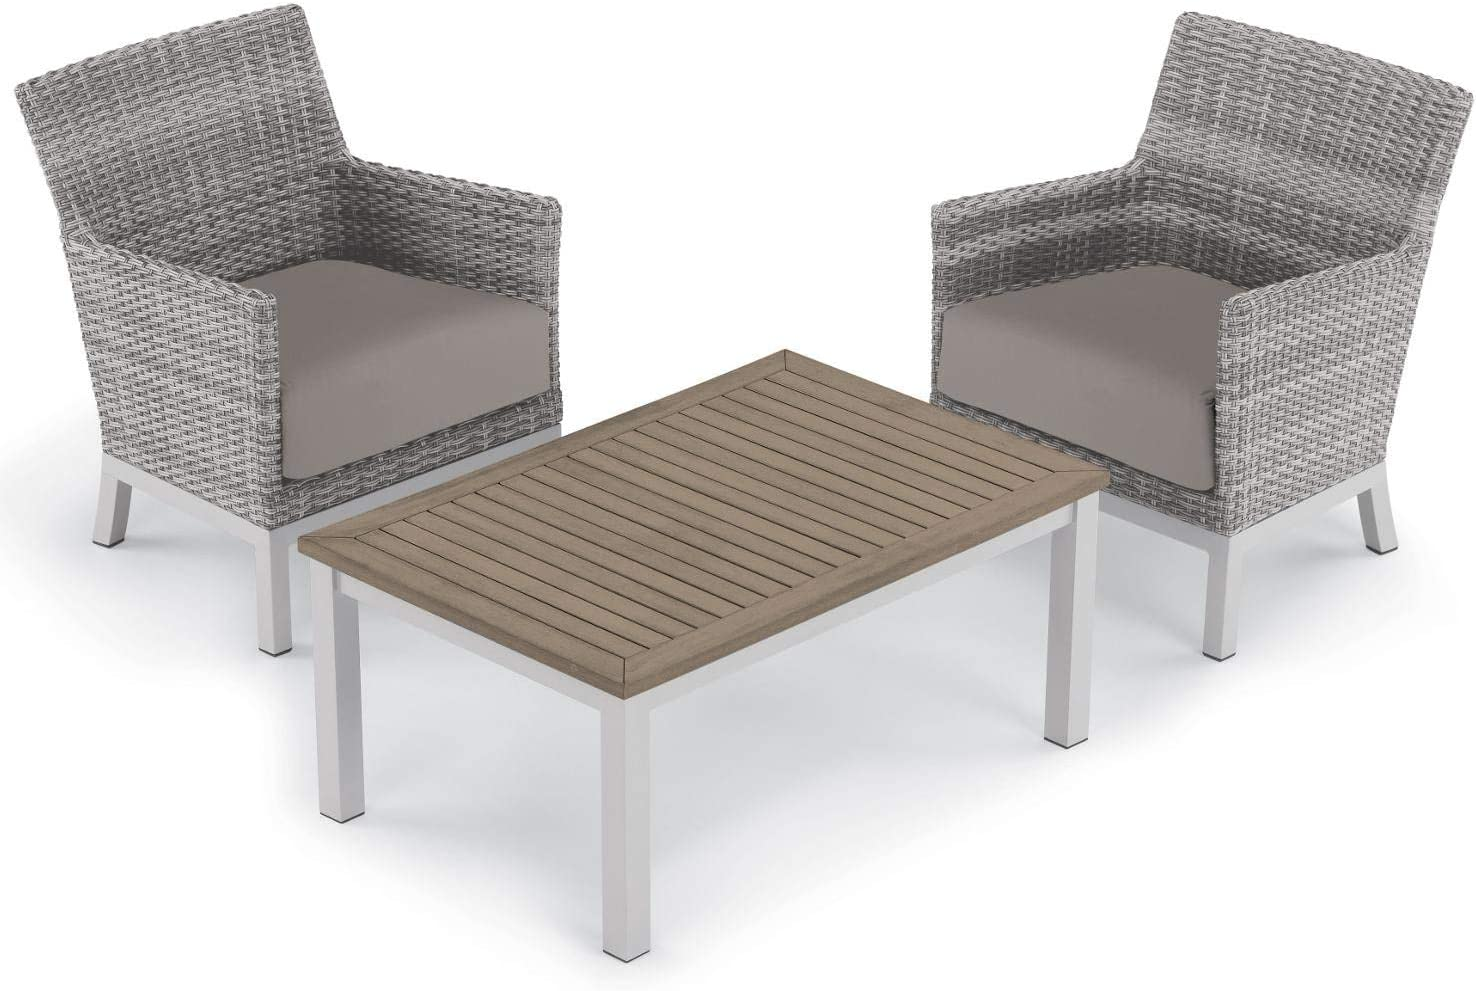 Oxford Garden 5572 Argento & Travira Furniture Set, Powder Coat Flint